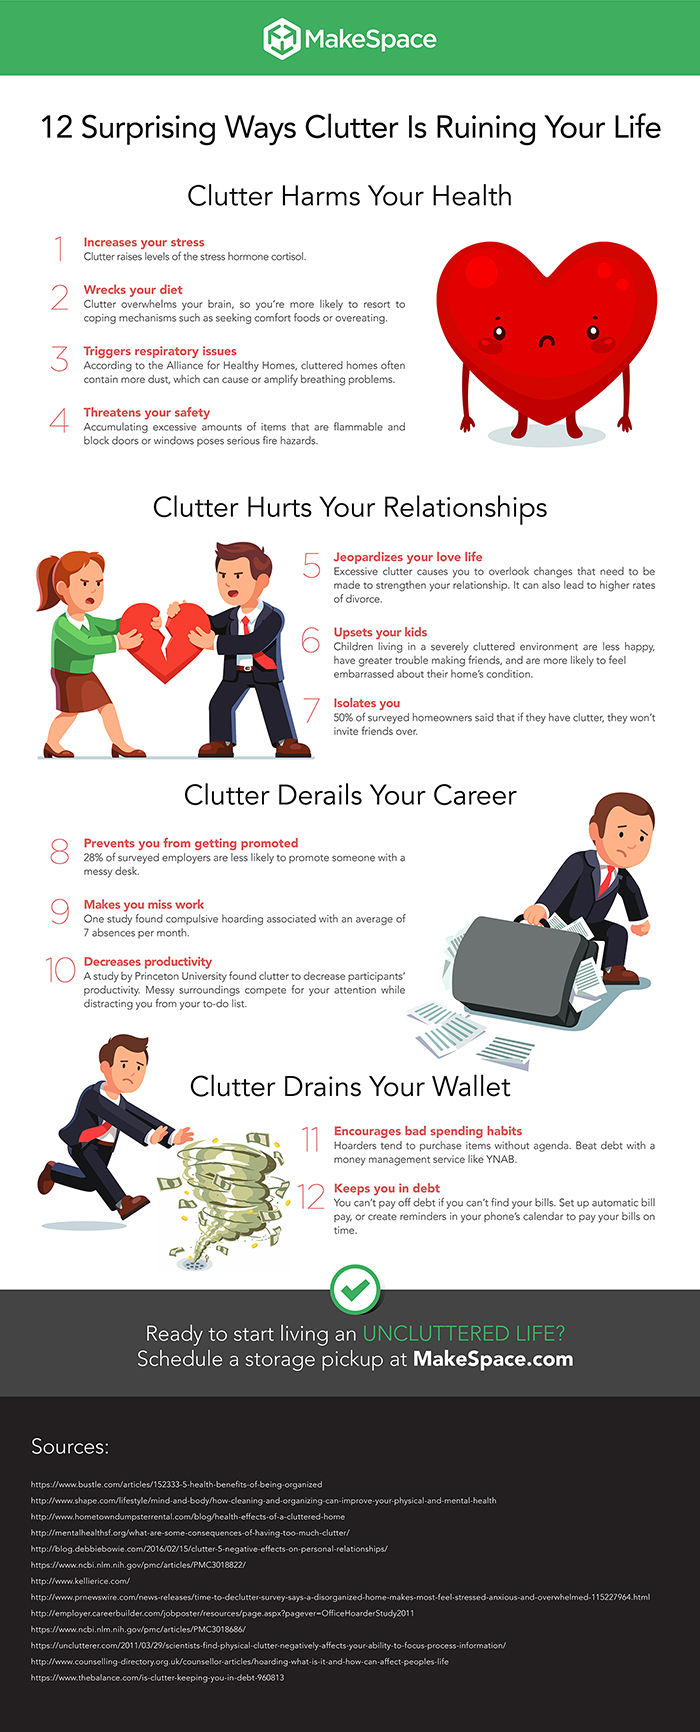 12 Surprising Ways Clutter Is Ruining Your Life #infographic